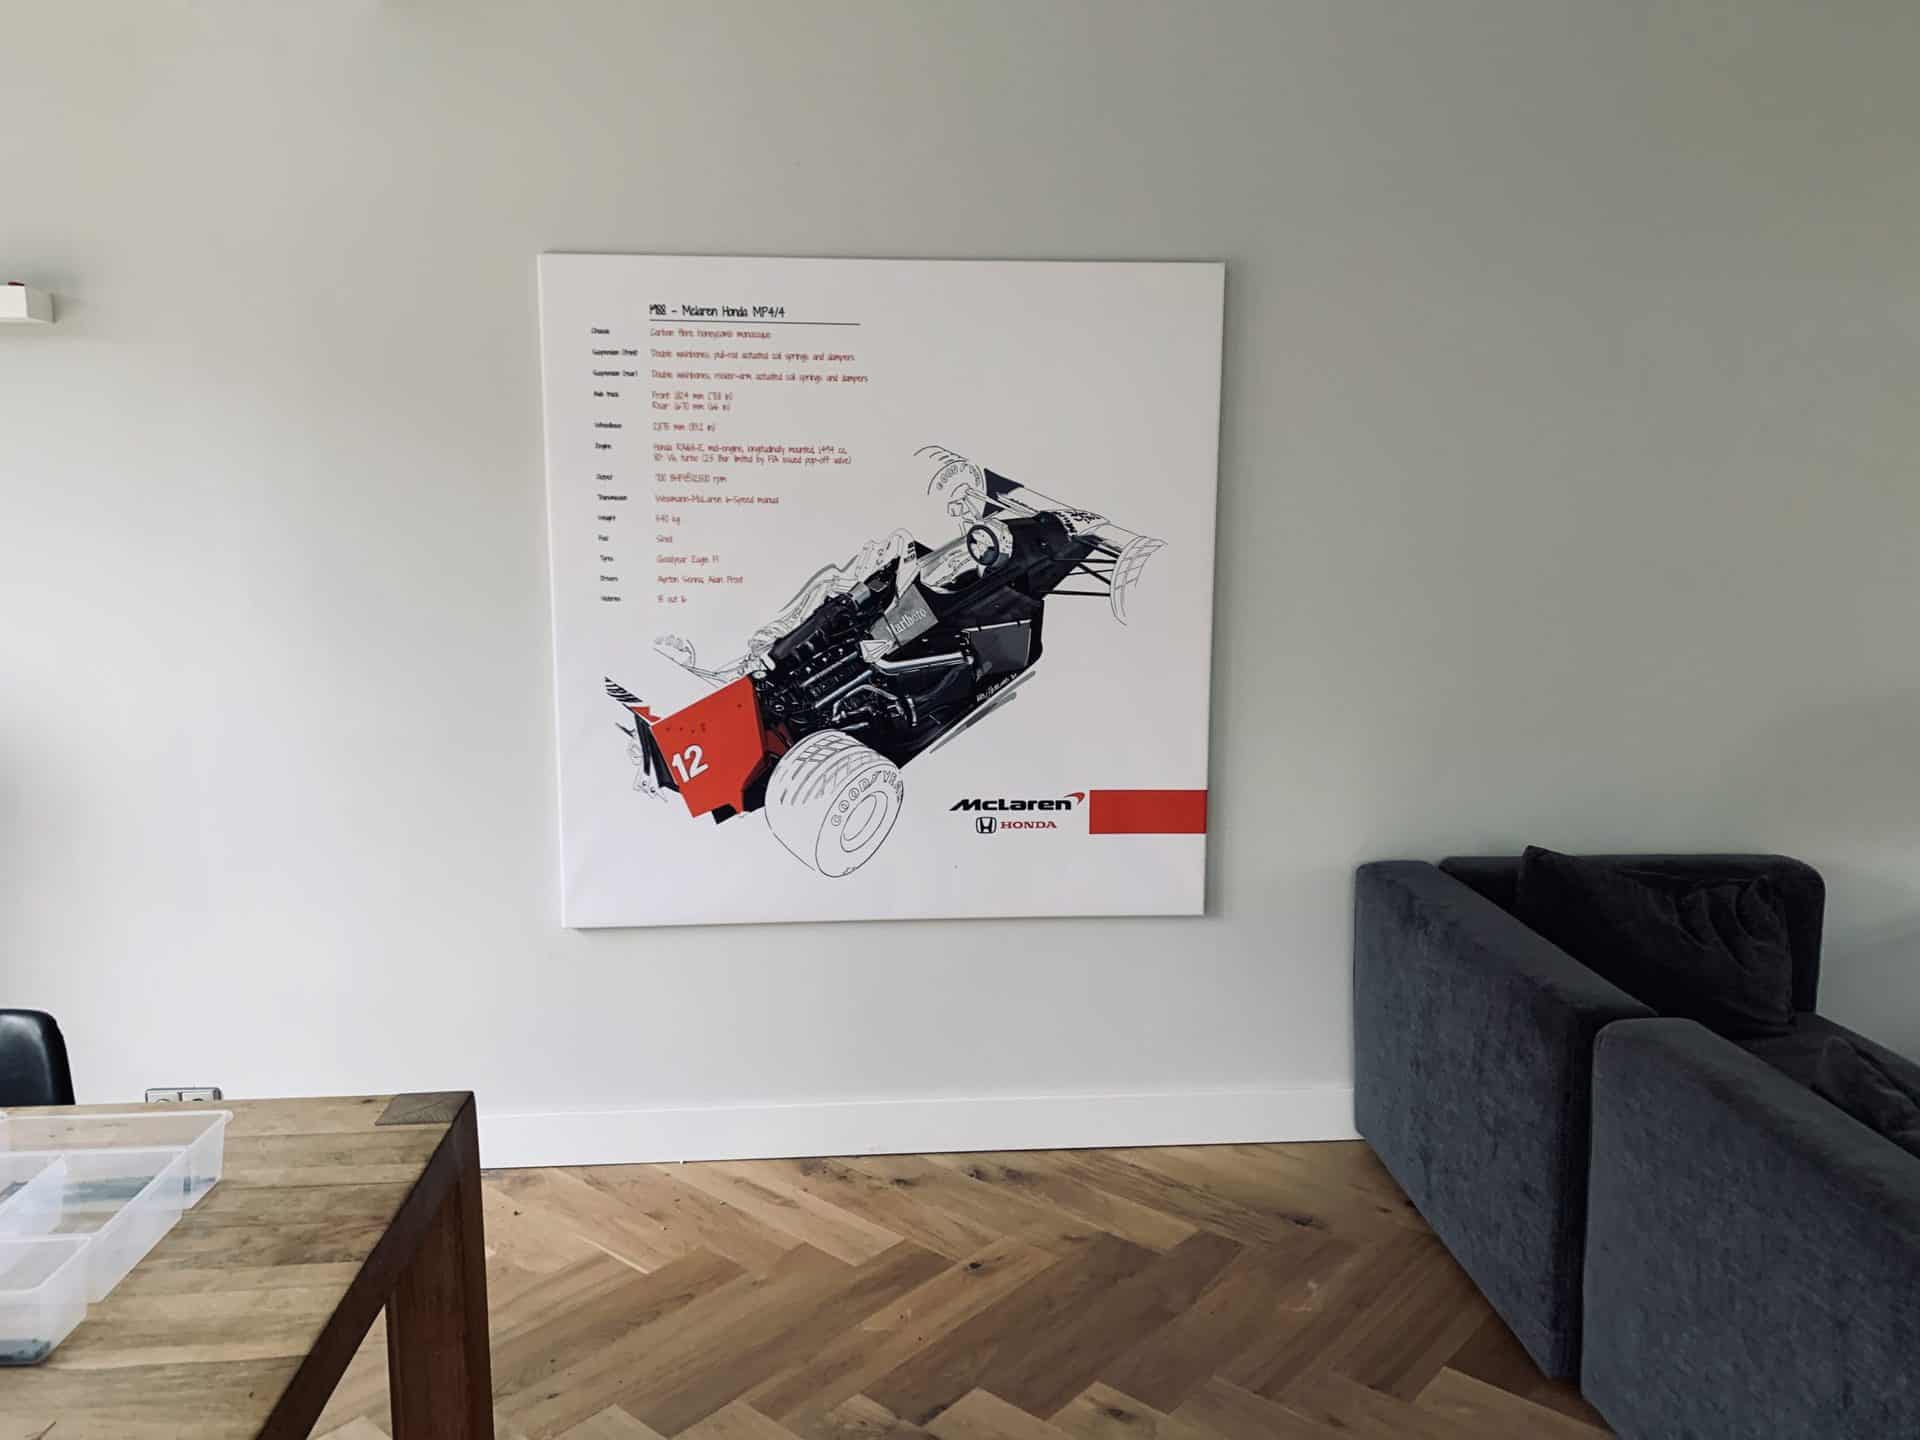 Mclaren Honda F1 MP4/4 Hand Drawn and Printed on Canvas